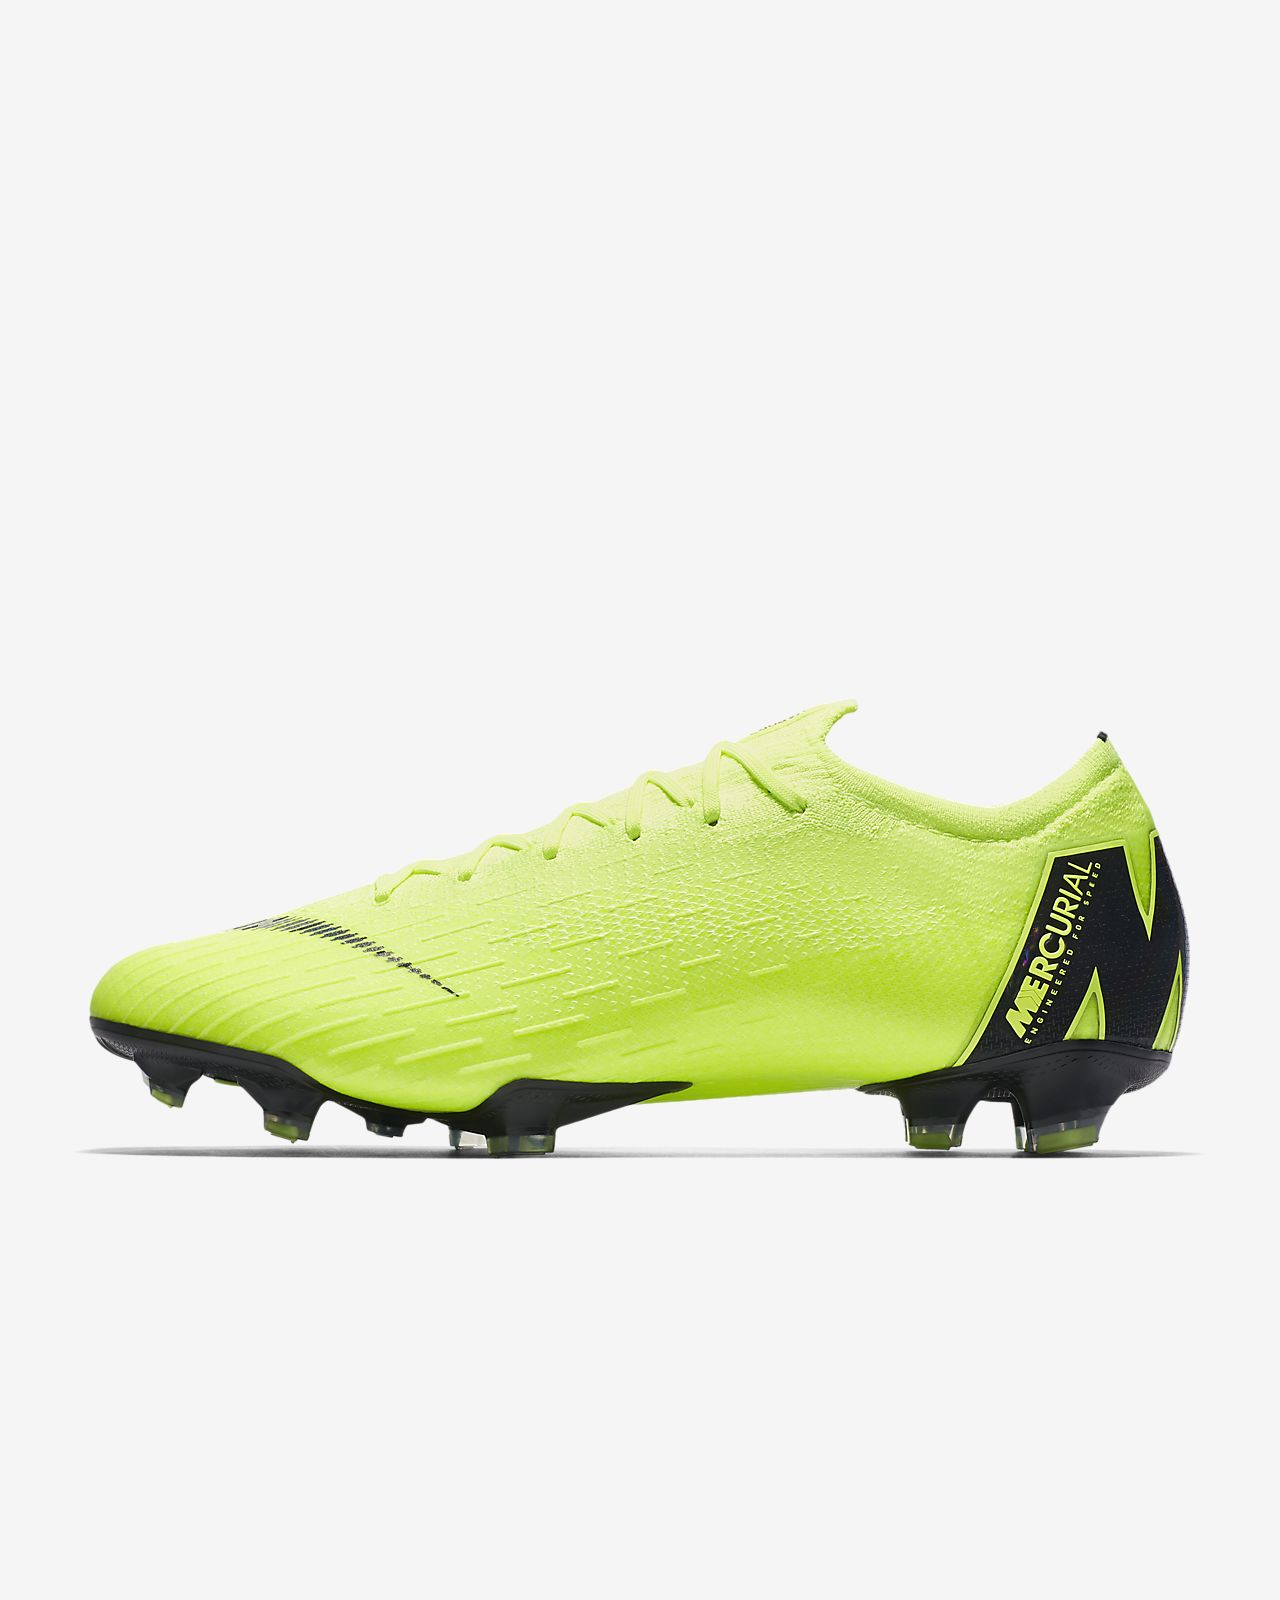 ca8e84fde94 Nike Vapor 12 Elite FG Firm-Ground Football Boot. Nike.com GB